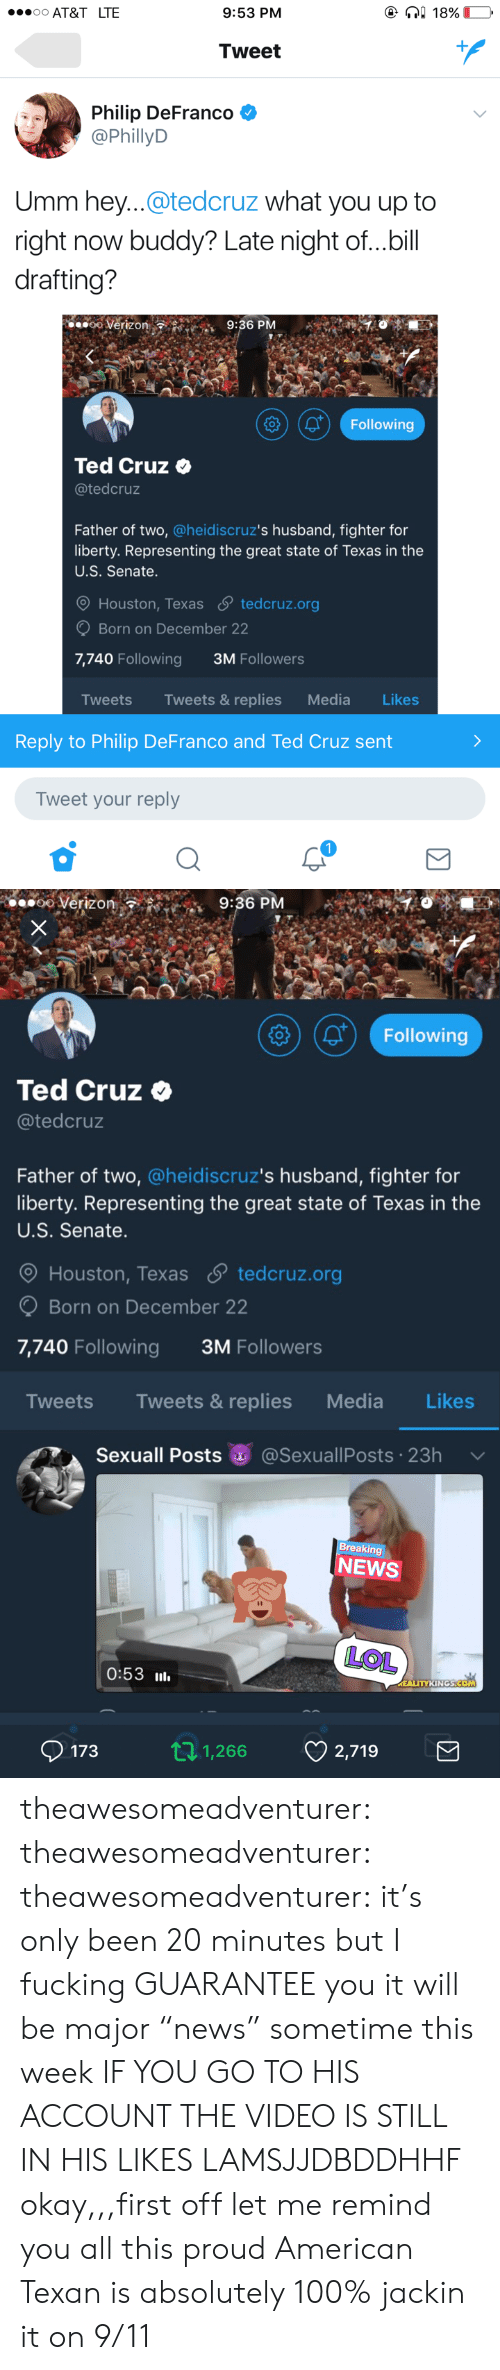 "Drafting: AT&T LTE  9:53 PM  Tweet  Philip DeFranco *  @PhillyD  Umm hey...@tedcruz what you up to  right now buddy? Late night of...bill  drafting?  ooVerizon  9:36 PM  (01 Following  Ted Cruz o  @tedcruz  Father of two, @heidiscruz's husband, fighter for  liberty. Representing the great state of Texas in the  U.S. Senate  Houston, Texas S tedcruz.org  Born on December 22  7,740 Following  3M Followers  Tweets Tweets & replies Media Likes  Reply to Philip DeFranco and Ted Cruz sent  Tweet your reply   o Verizon  9:36 P  Following  Ted Cruz  @tedcruz  Father of two, @heidiscruz's husband, fighter for  liberty. Representing the great state of Texas in the  U.S. Senate.  O Houston, Texas  tedcruz.org  Born on December 22  7,740 Following  3M Followers  Tweets Tweets& replies Media Likes  Sexuall Posts @SexuallPosts 23h  reaking  NEWS  LOL  0:53 l  1731,266 2,719 theawesomeadventurer: theawesomeadventurer:   theawesomeadventurer:  it's only been 20 minutes but I fucking GUARANTEE you it will be major ""news"" sometime this week  IF YOU GO TO HIS ACCOUNT THE VIDEO IS STILL IN HIS LIKES LAMSJJDBDDHHF   okay,,,first off let me remind you all this proud American Texan is absolutely 100% jackin it on 9/11"